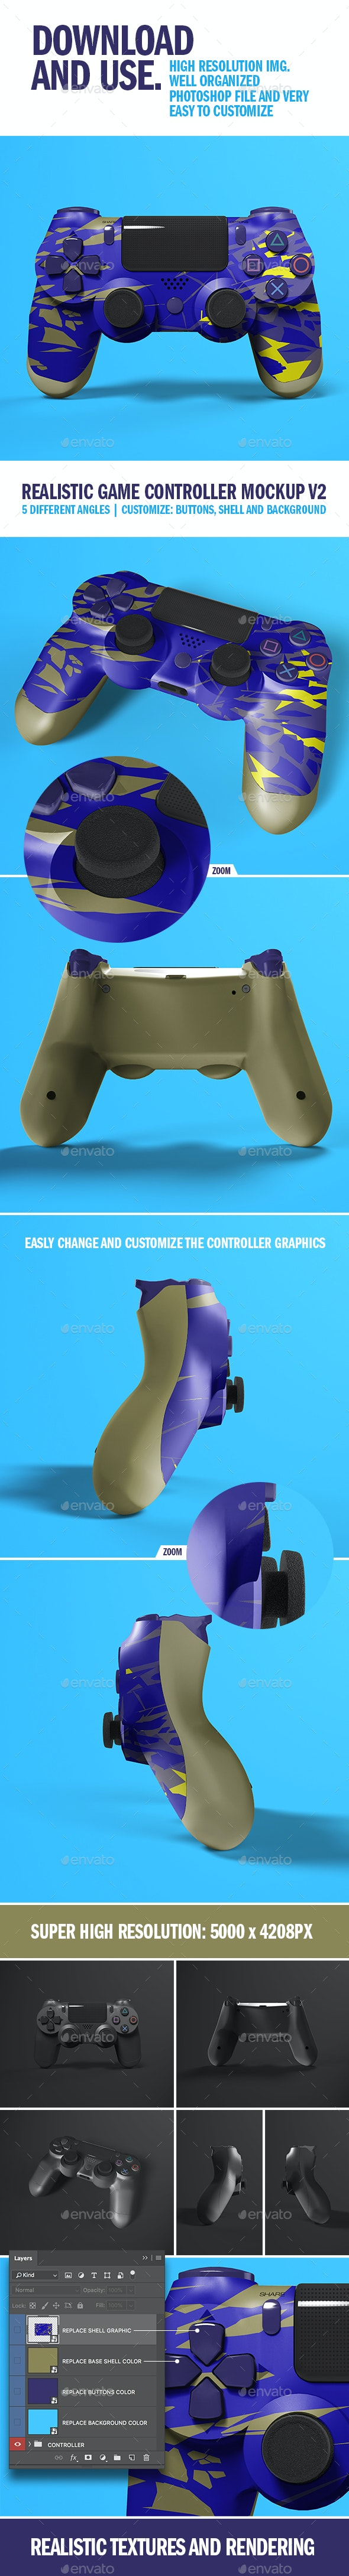 Realistic Game Controller Mockup V2 - Product Mock-Ups Graphics